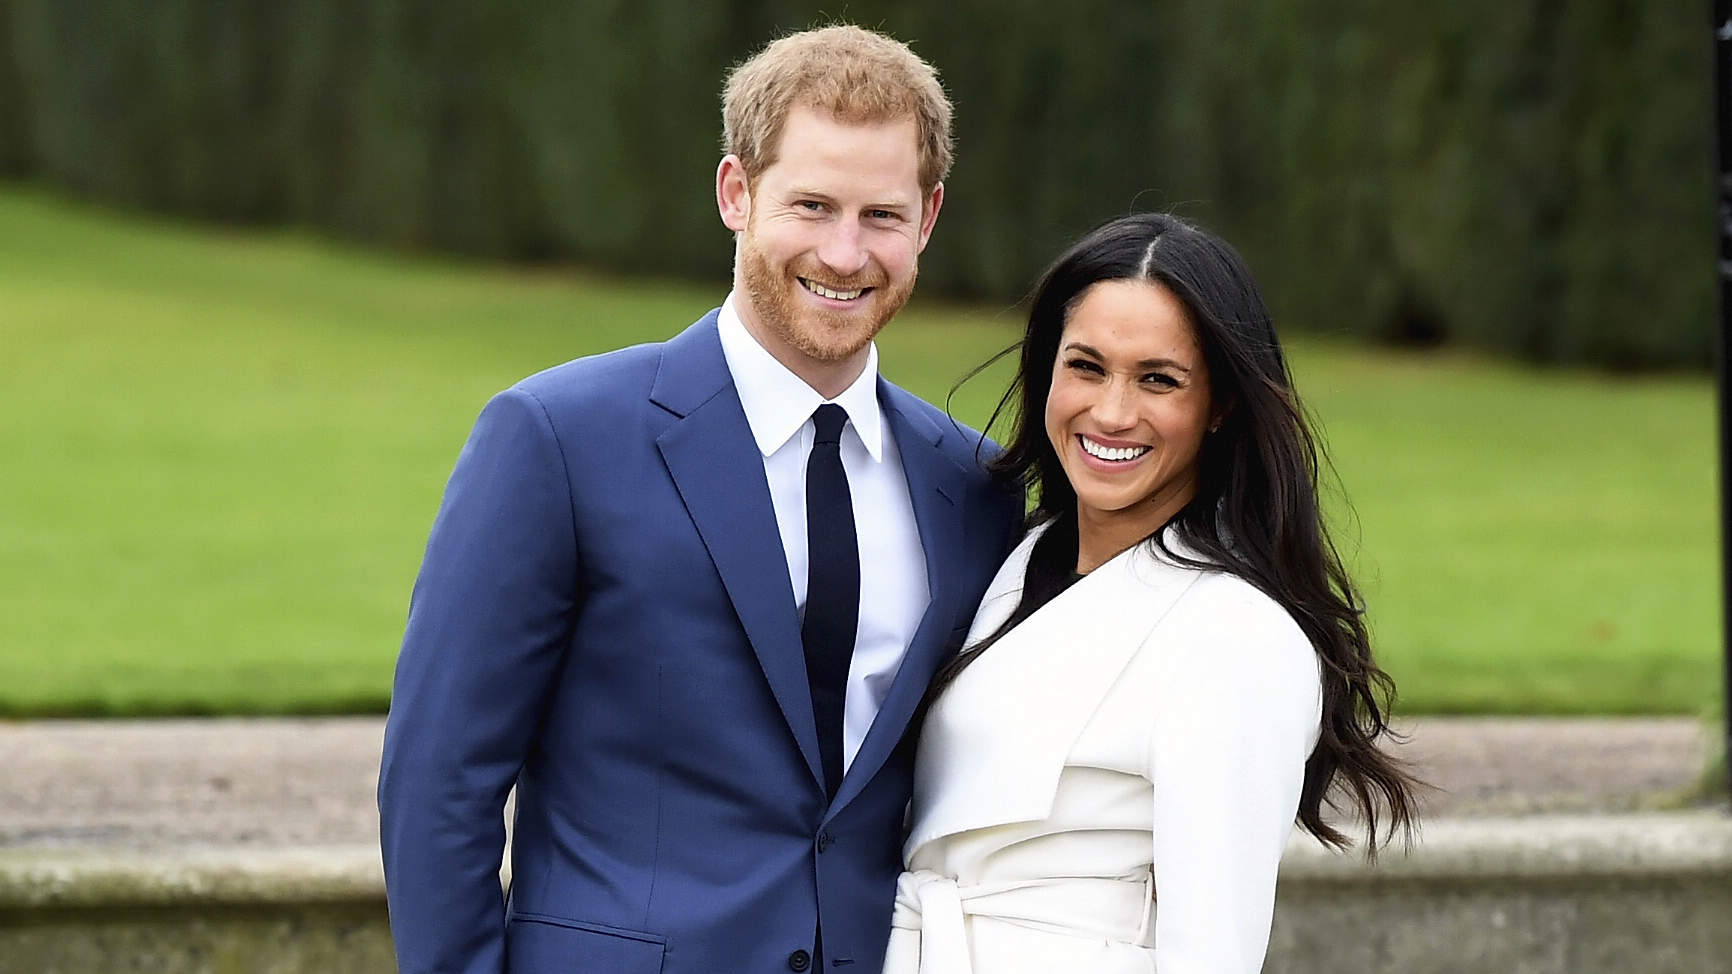 Prince Harry and Meghan Markle Just Expanded Their Wedding Guest List in a Very Special Way